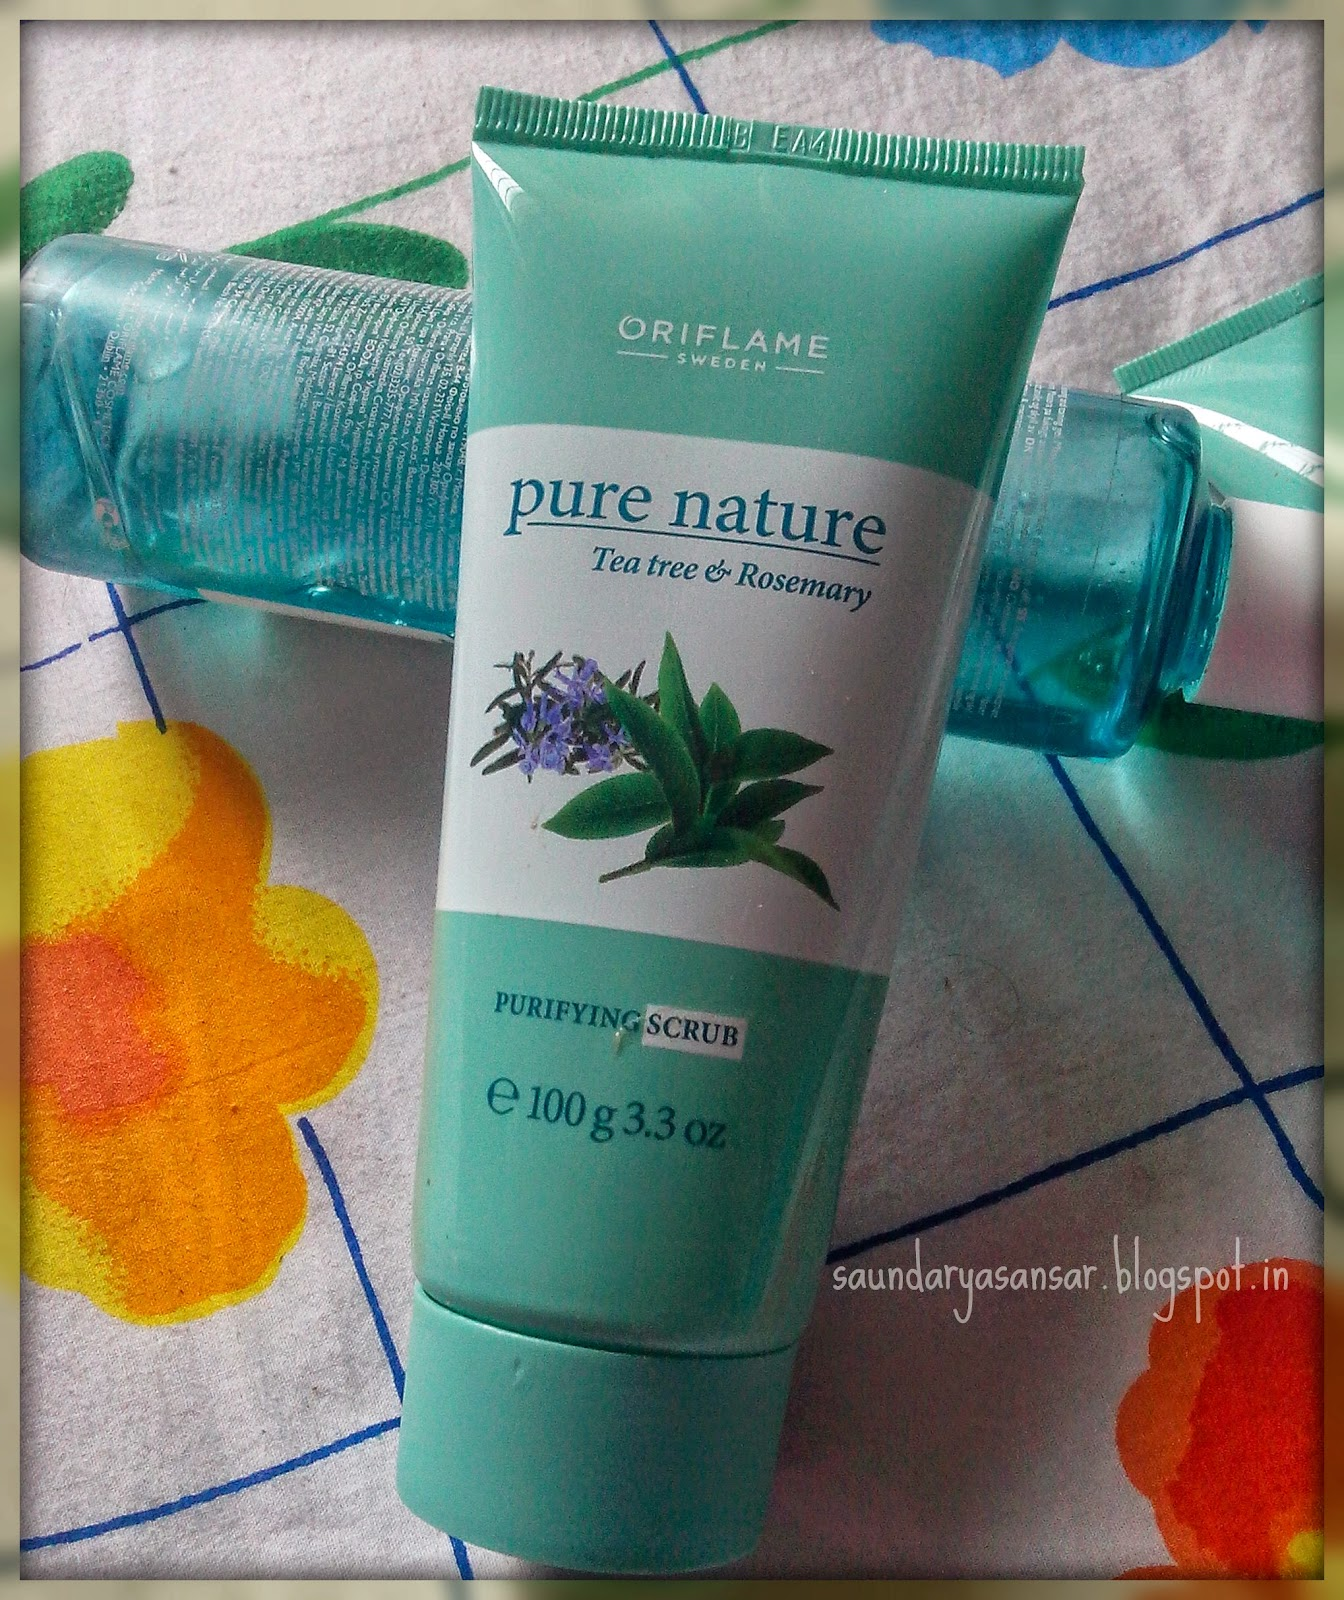 ORIFLAME-PURE-NATURE-Tea-Tree-and-Rosemary-Purifying-Scrub-Review